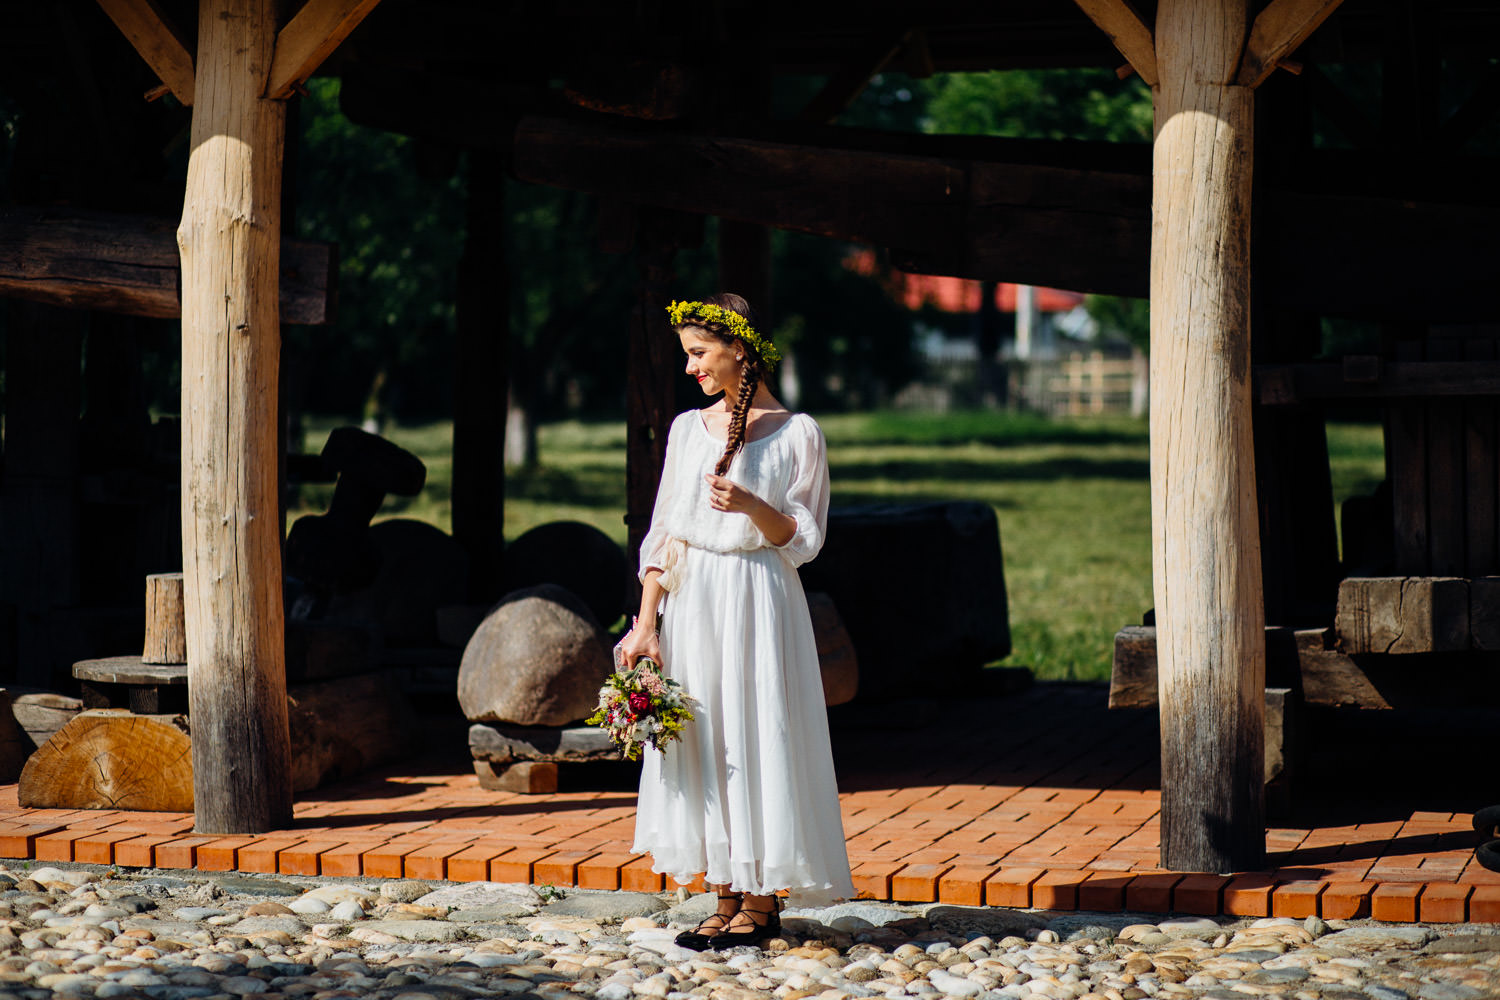 Bogdan & Luiza civil wedding Pitesti-1033